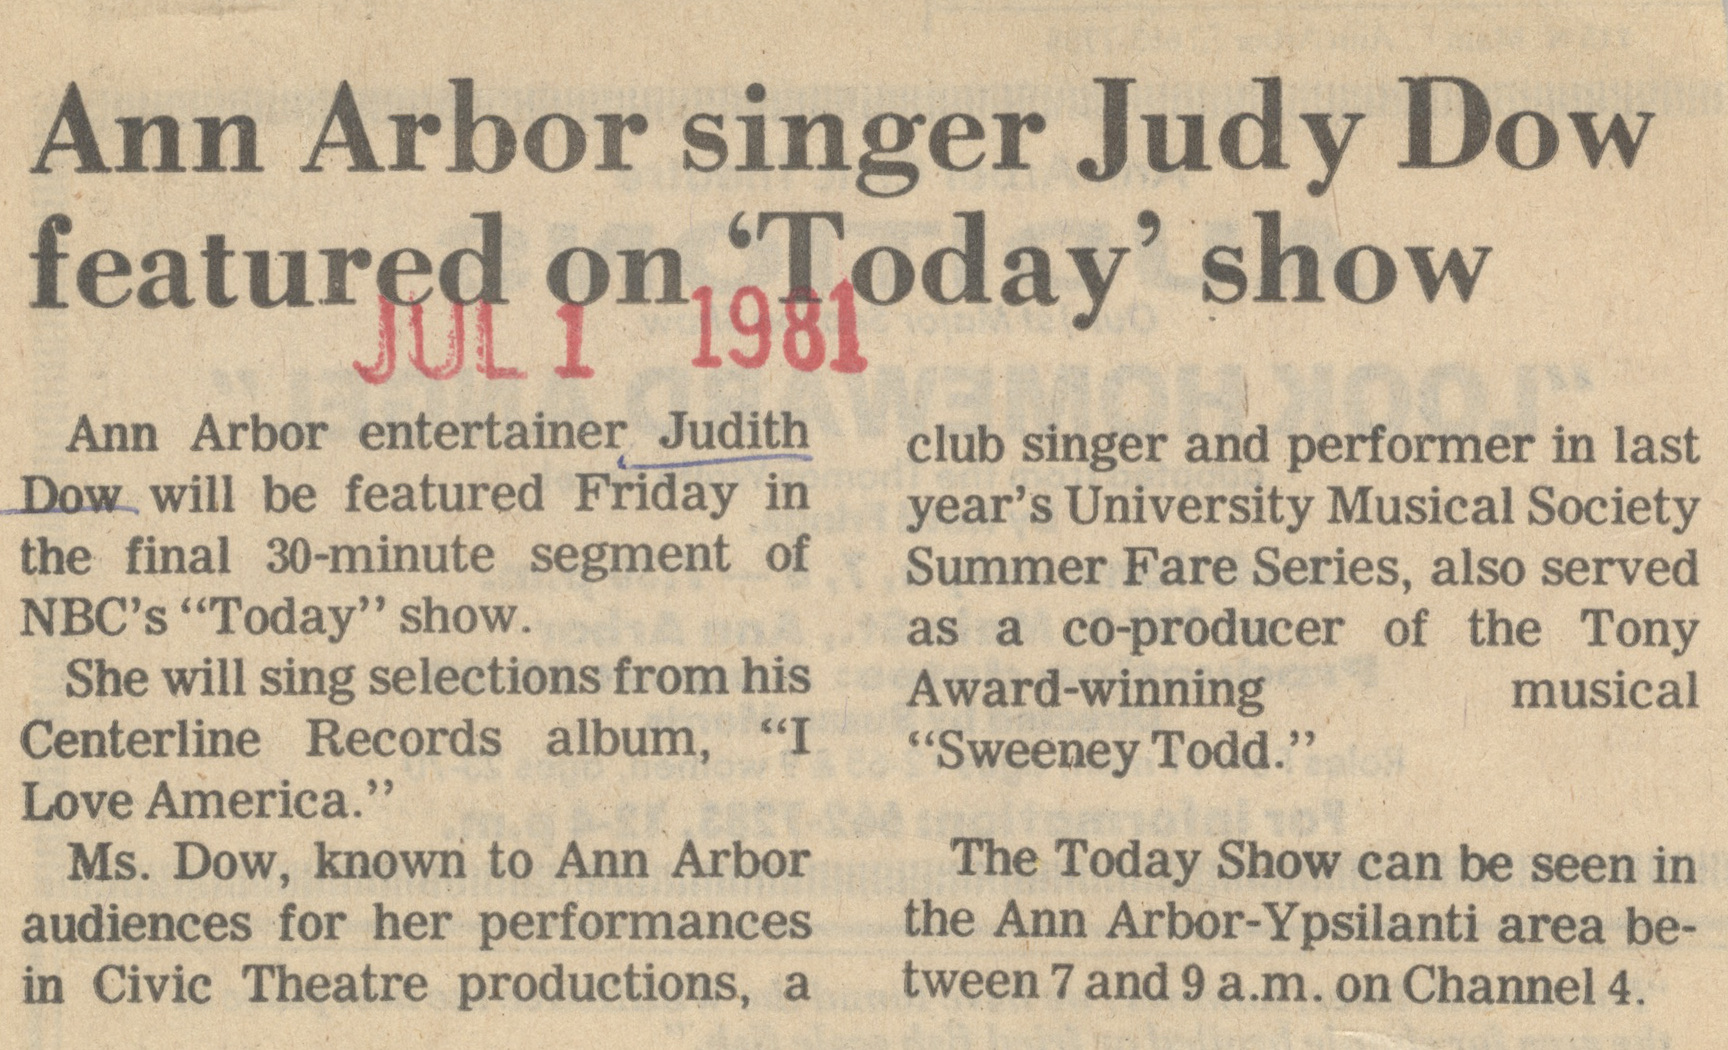 Ann Arbor Singer Judy Dow Featured On Today Show image